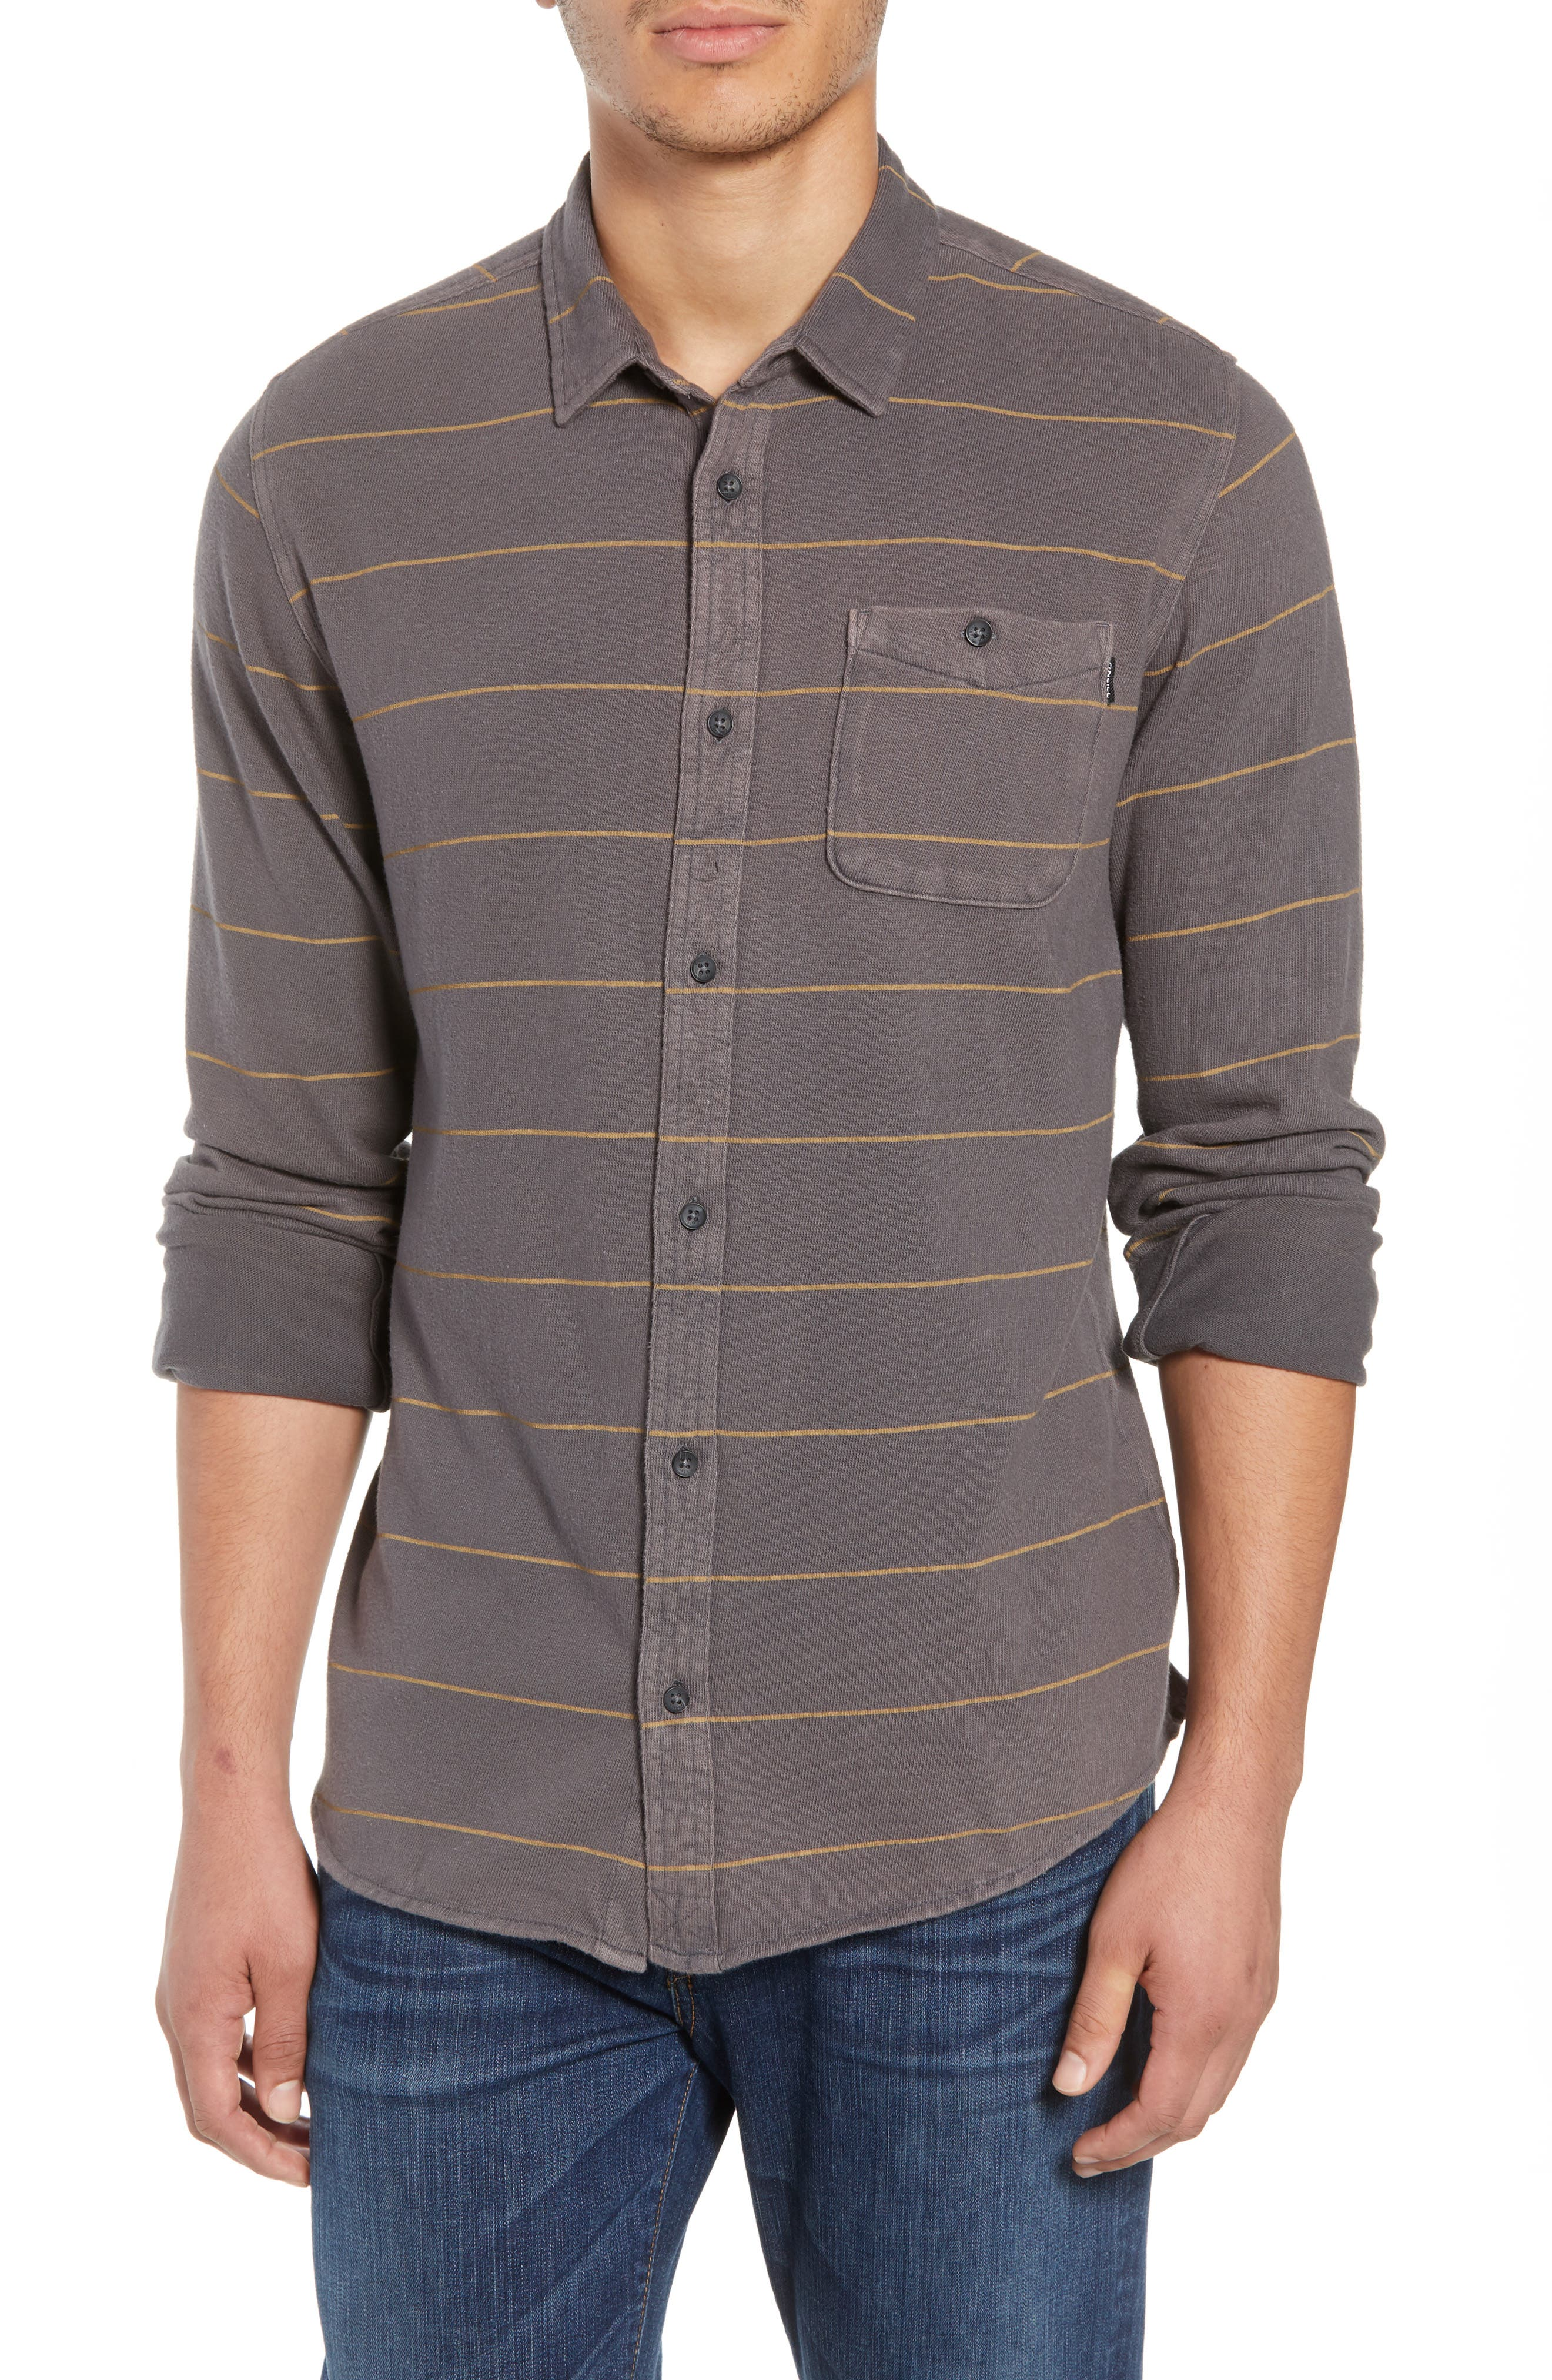 Cowell Knit Button-Up Shirt,                         Main,                         color, 020